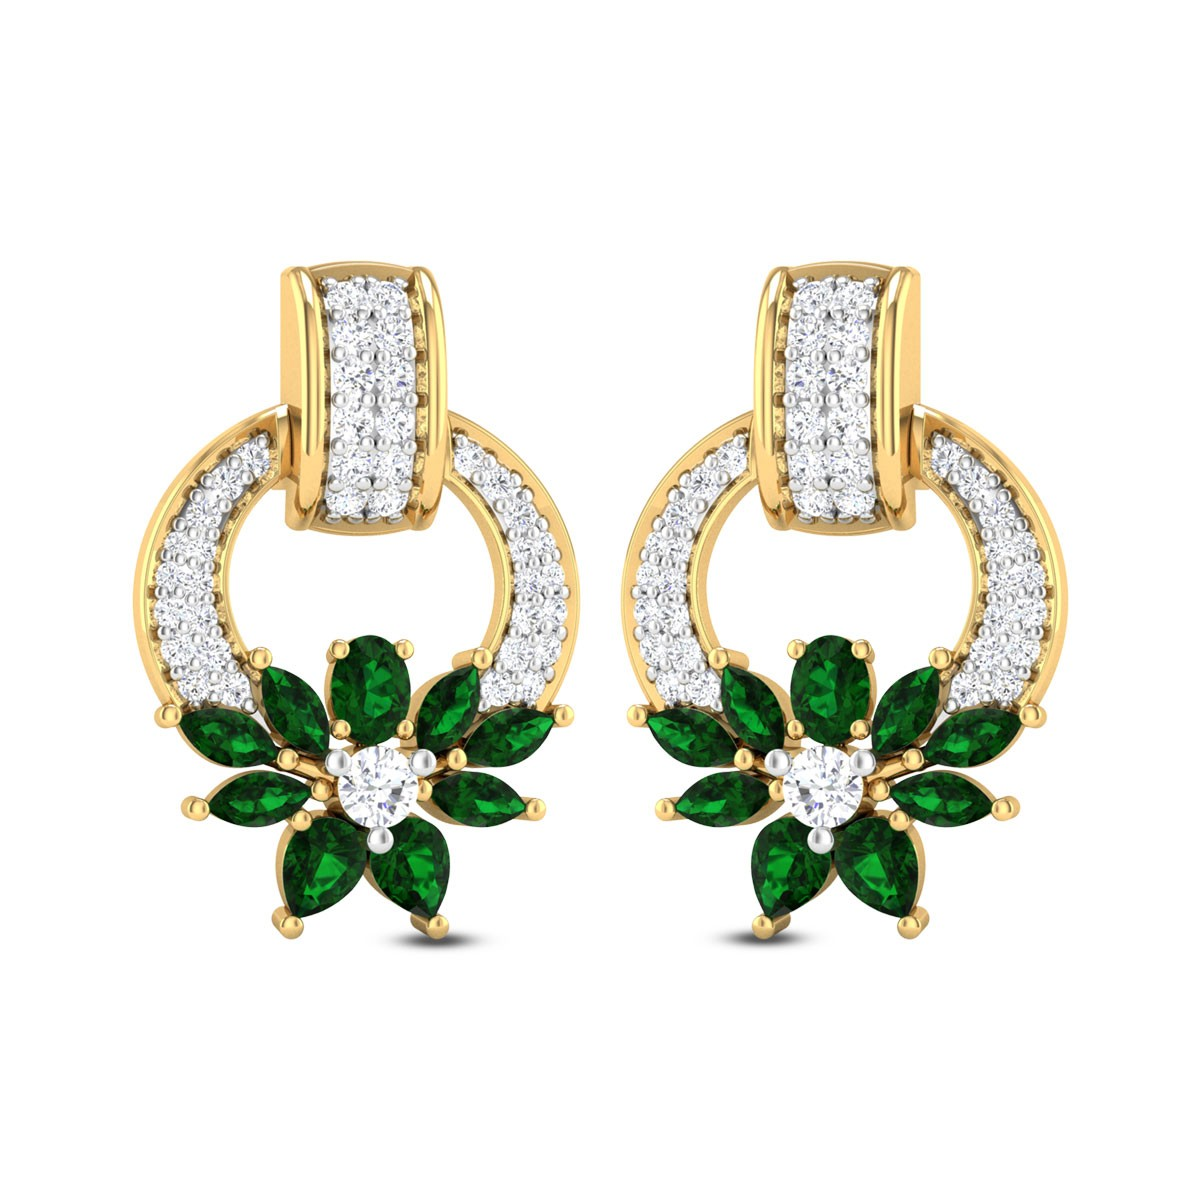 Shauri Floral Emerald Stud Earrings